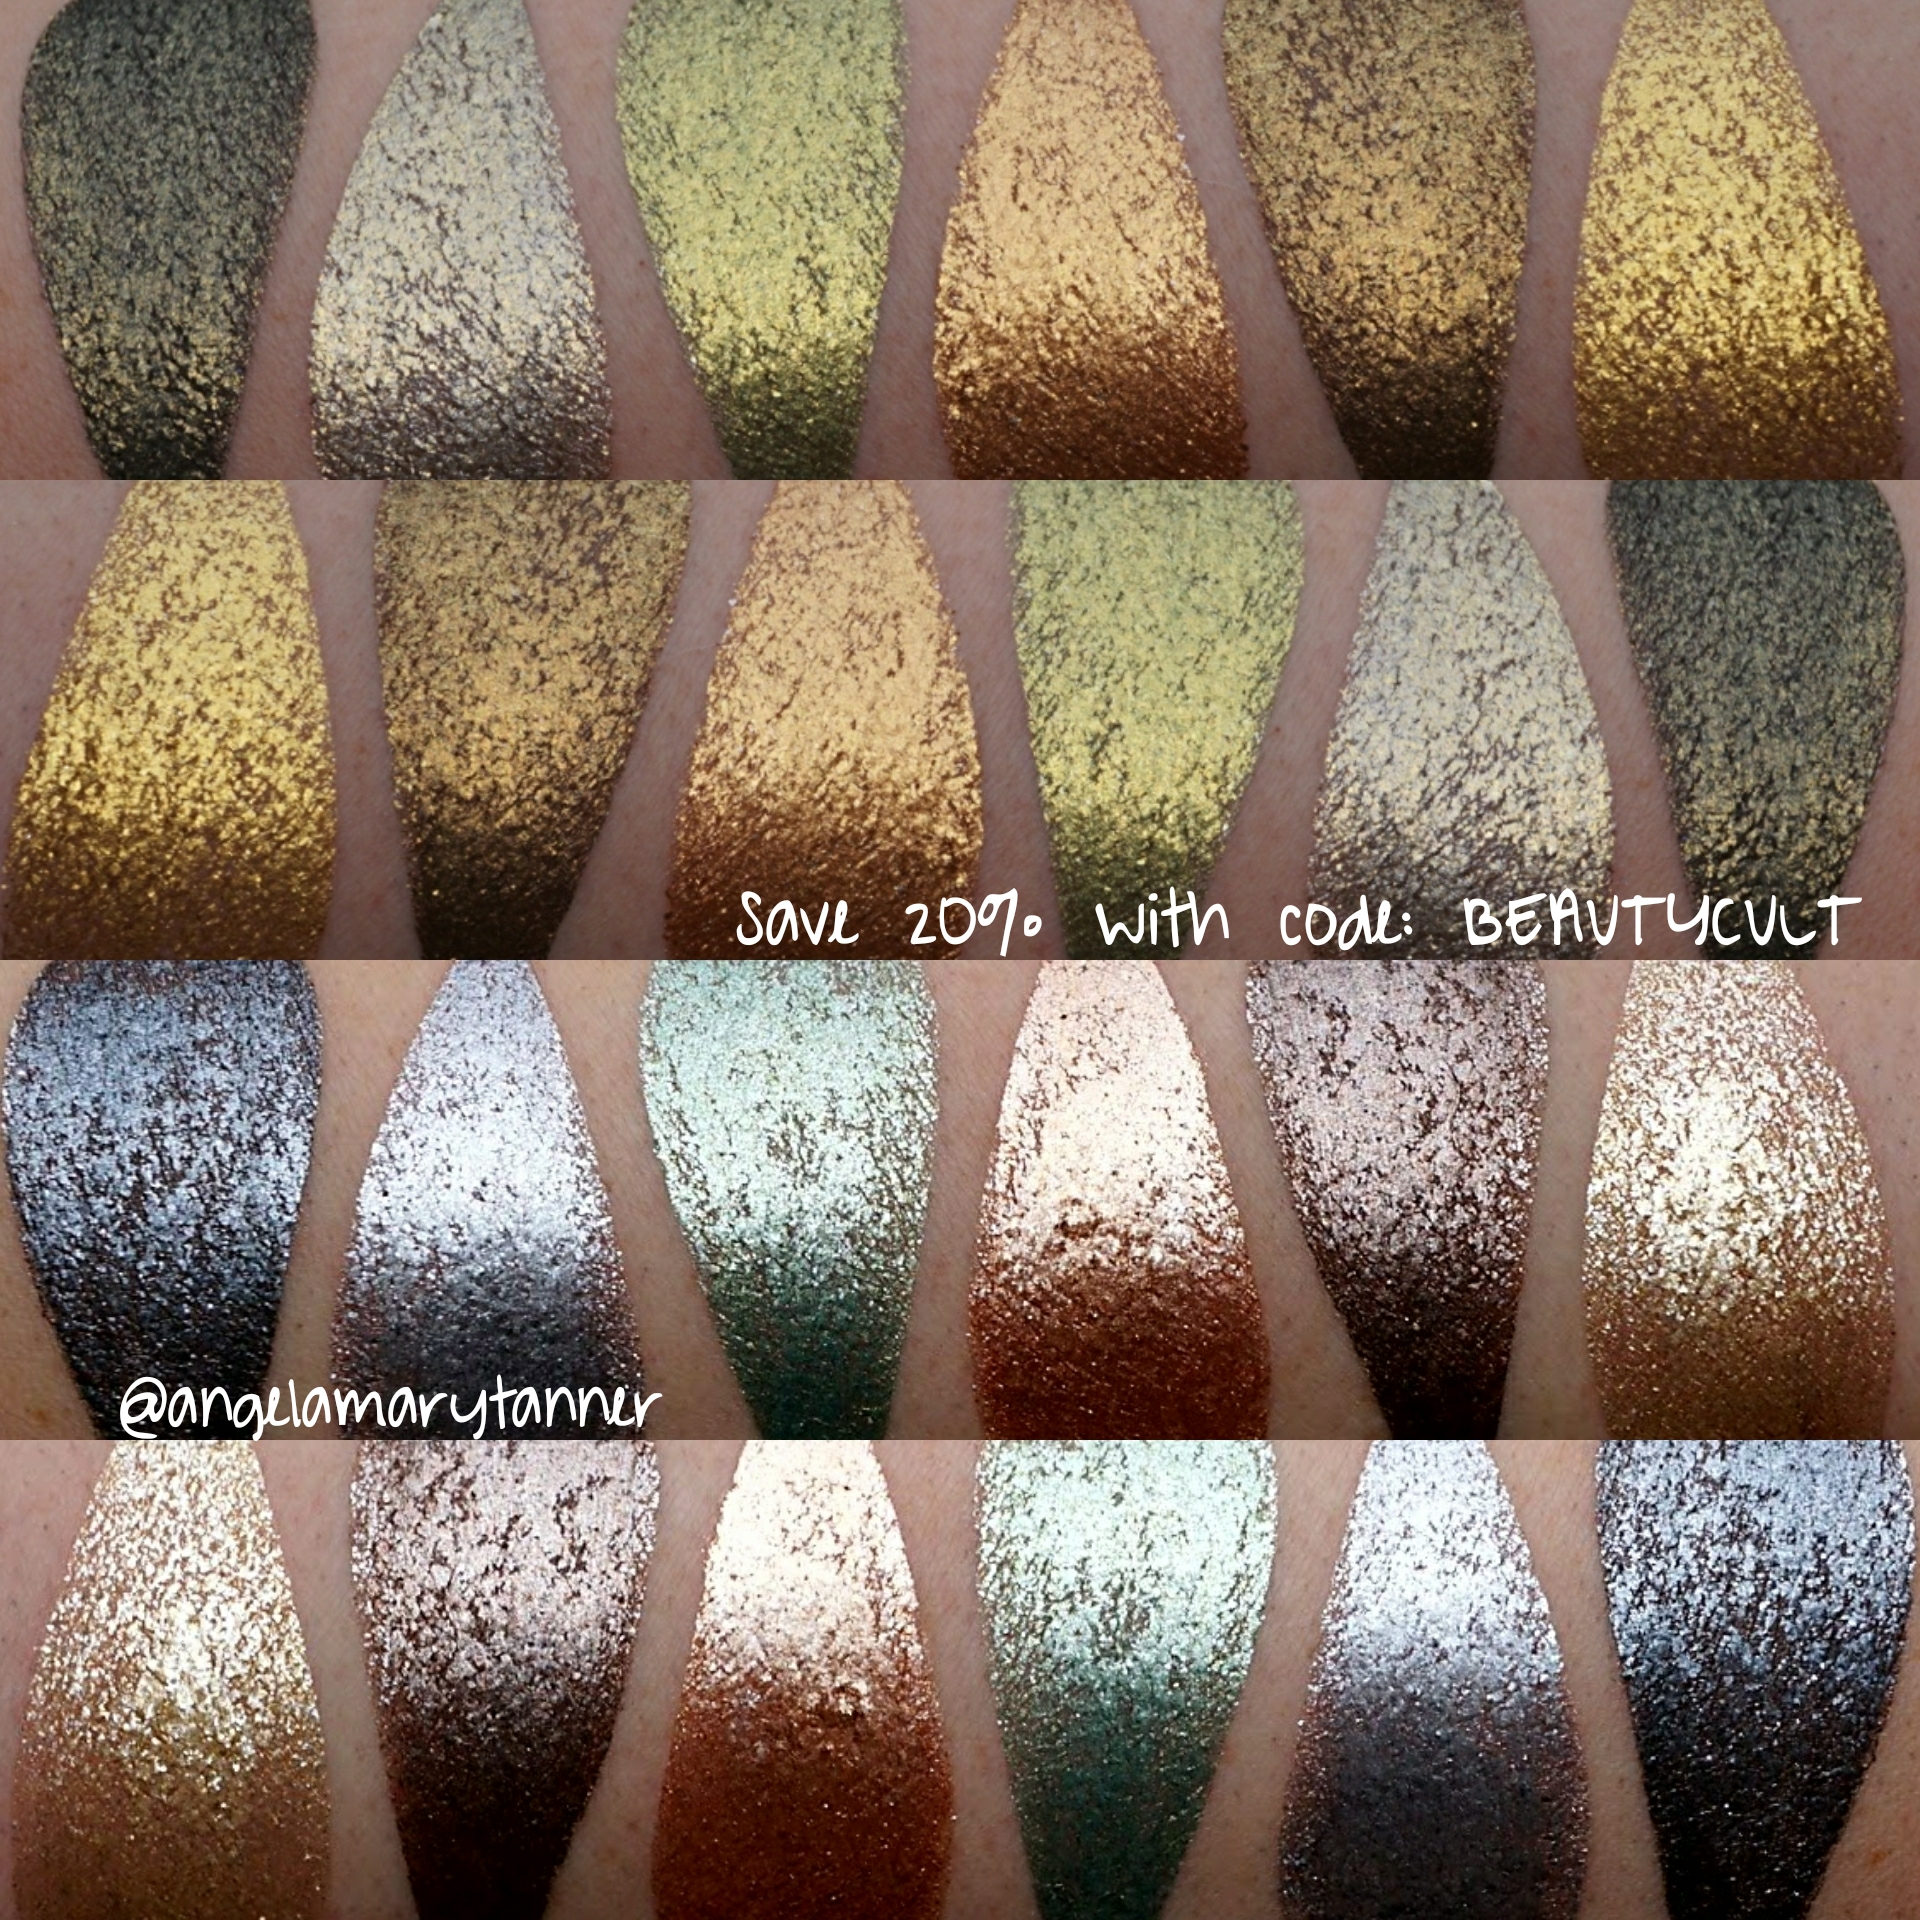 Lit Metal Huge Lit Cosmetics Glitter Swatch Fest Our Beauty Cult